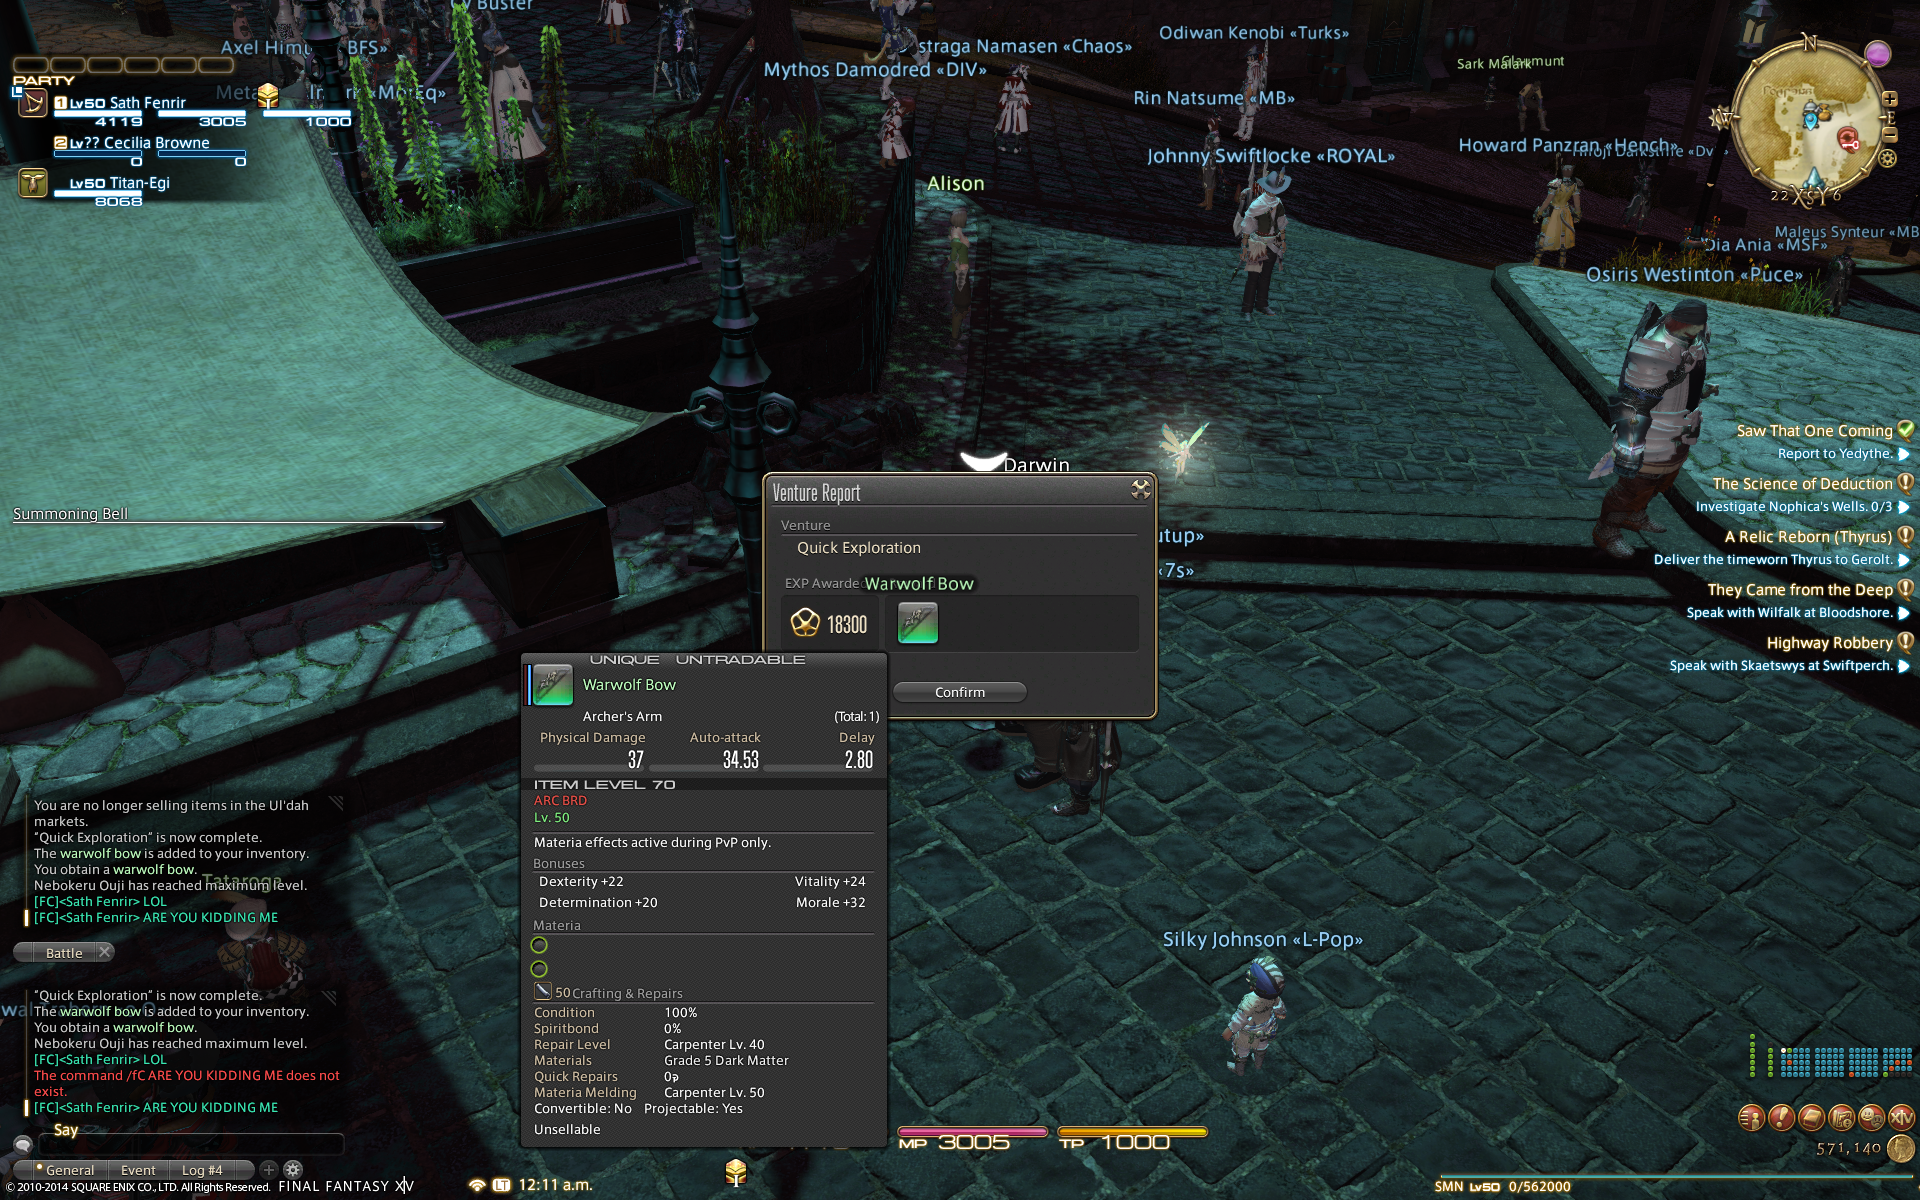 sathfenrir ffxiv retainer continues long lost death upon compendium useful pugs out-dps sanction will never